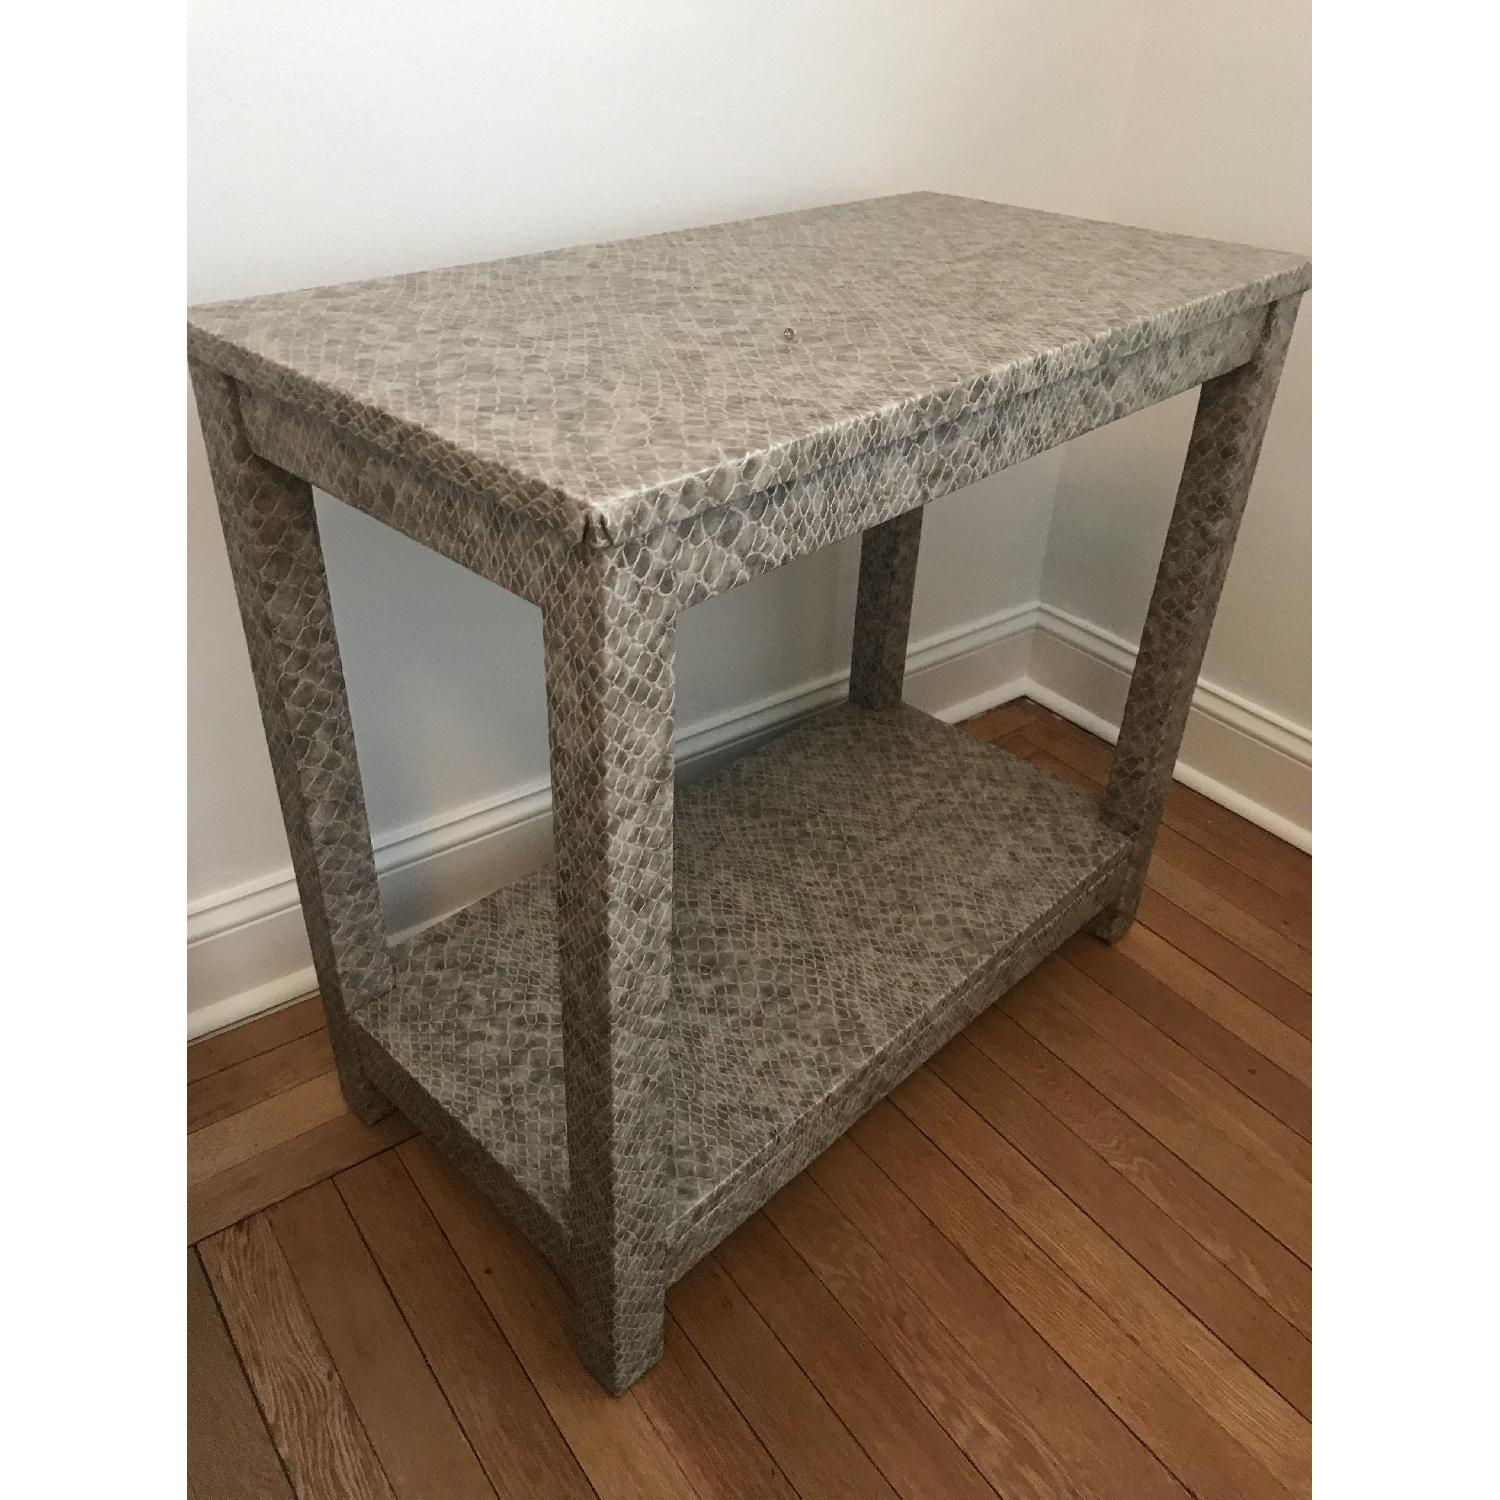 society social draper accent table faux python aptdeco frame wood tall oak side white barn door behind the couch wall wine rack quatrefoil bunnings swing set front entry tables